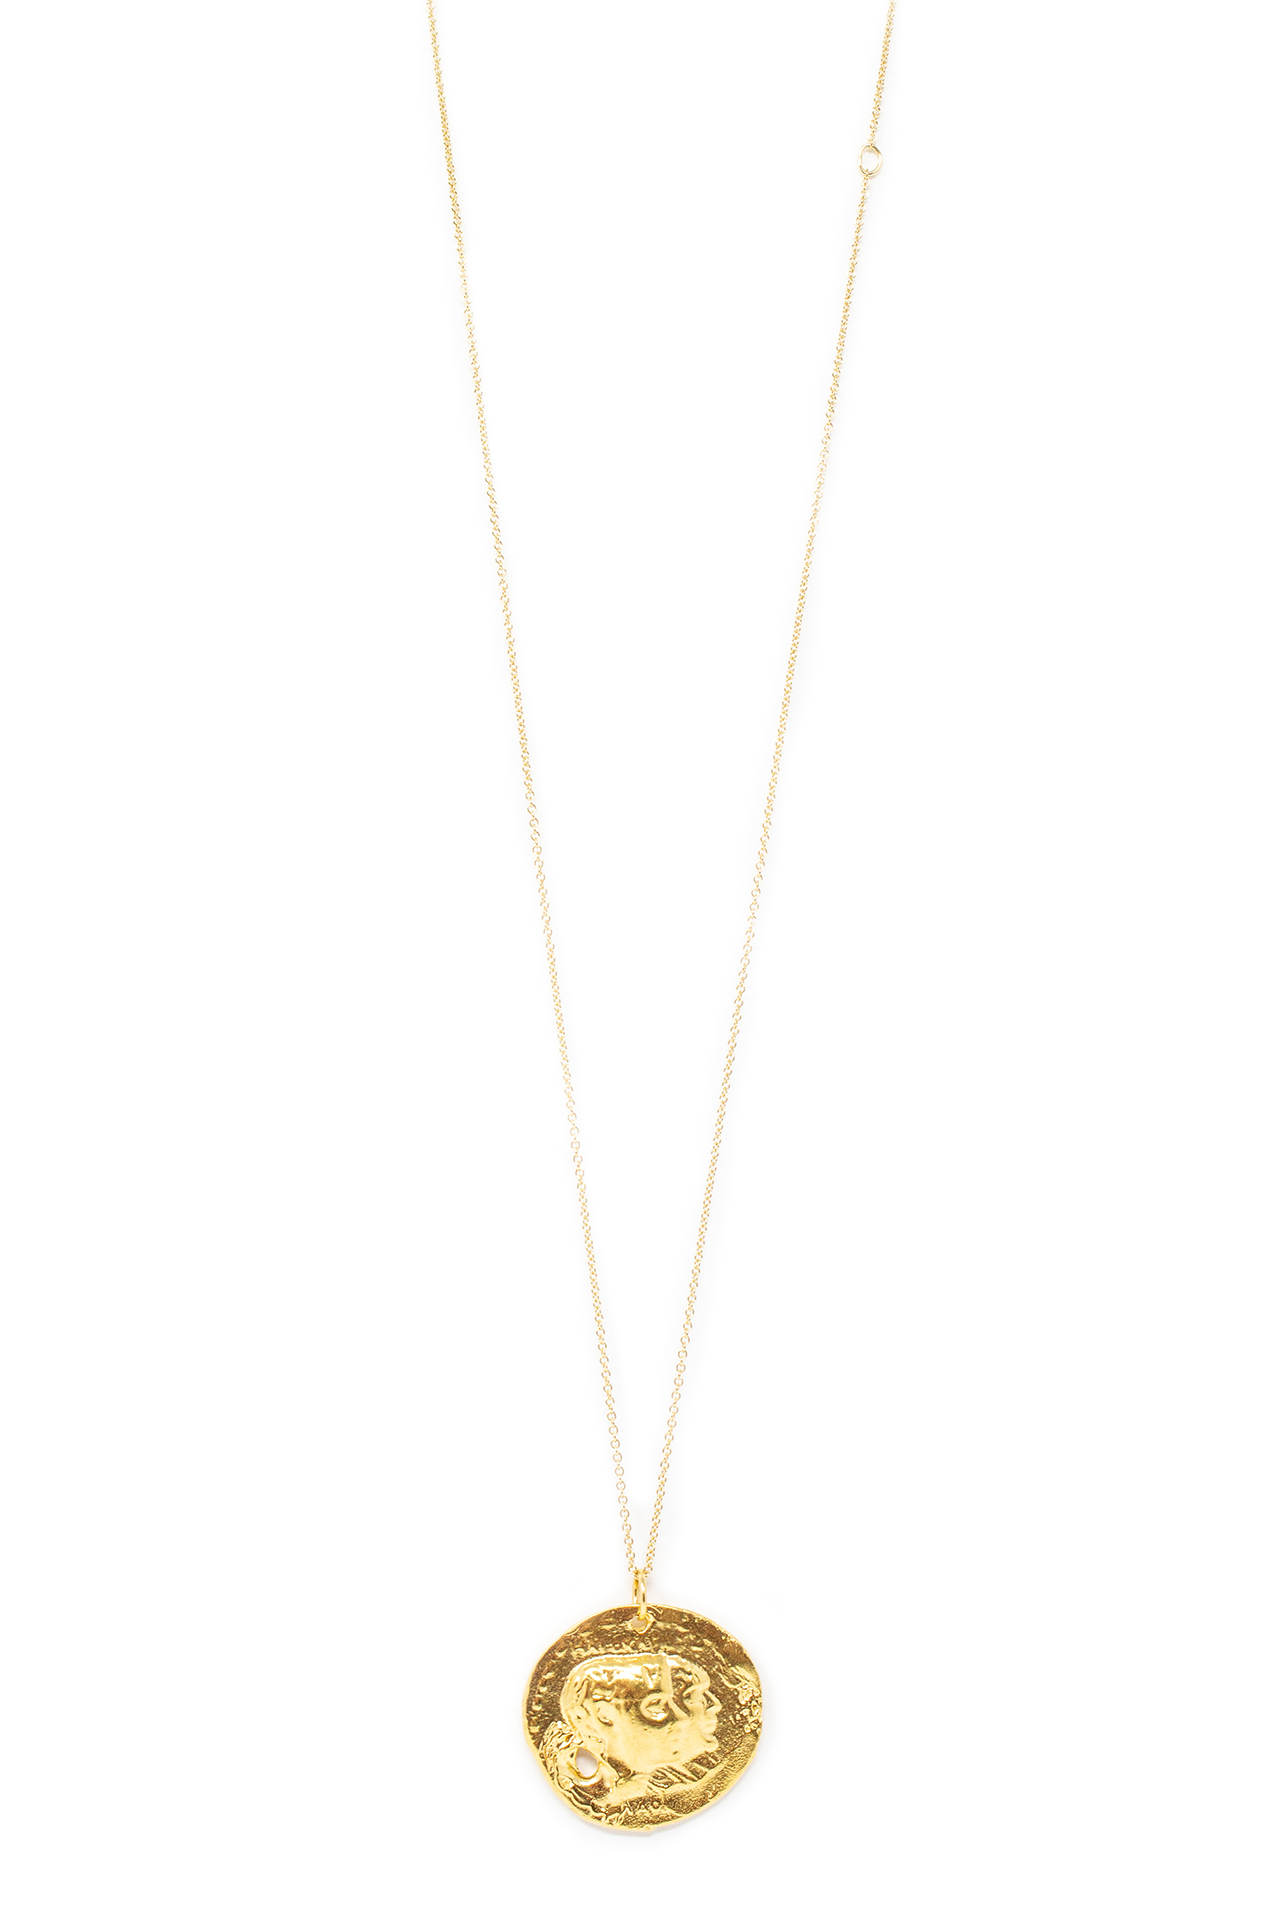 b5cd105521b52 The Other Side Of The World Necklace